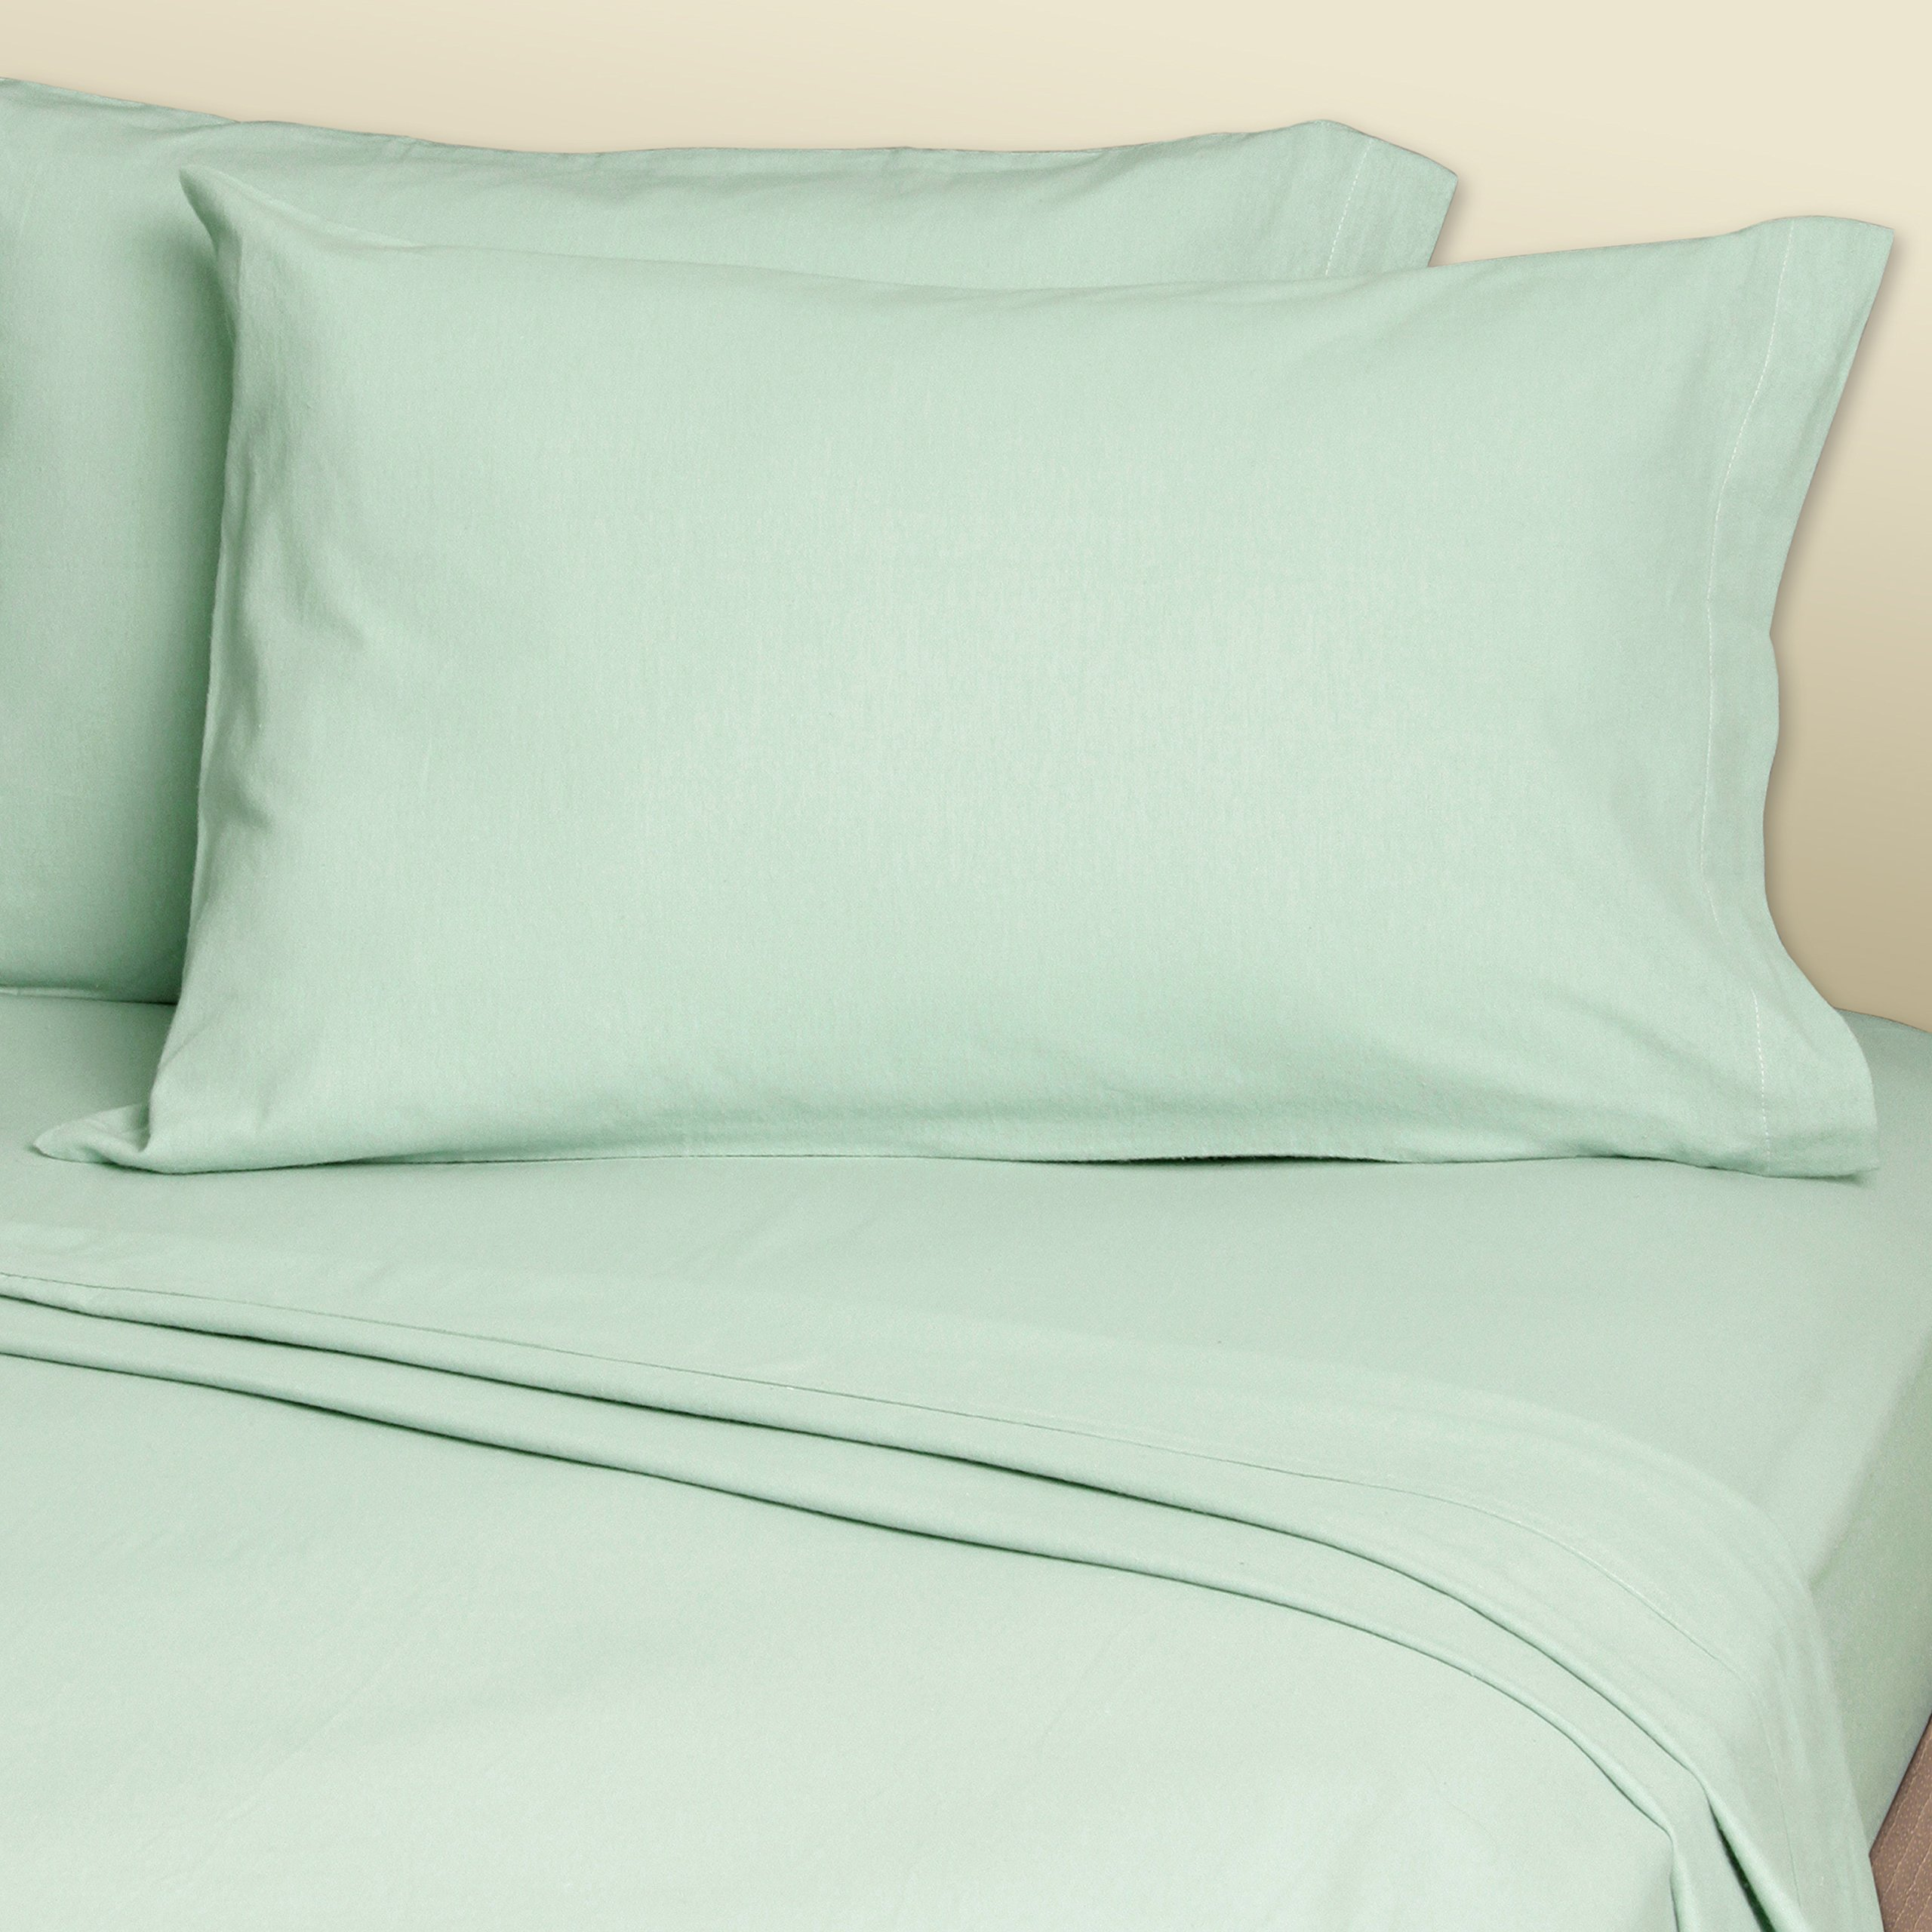 InnoMax Convert-A-Fit Percale Fitted Sheets, Solid, King, Seafoam